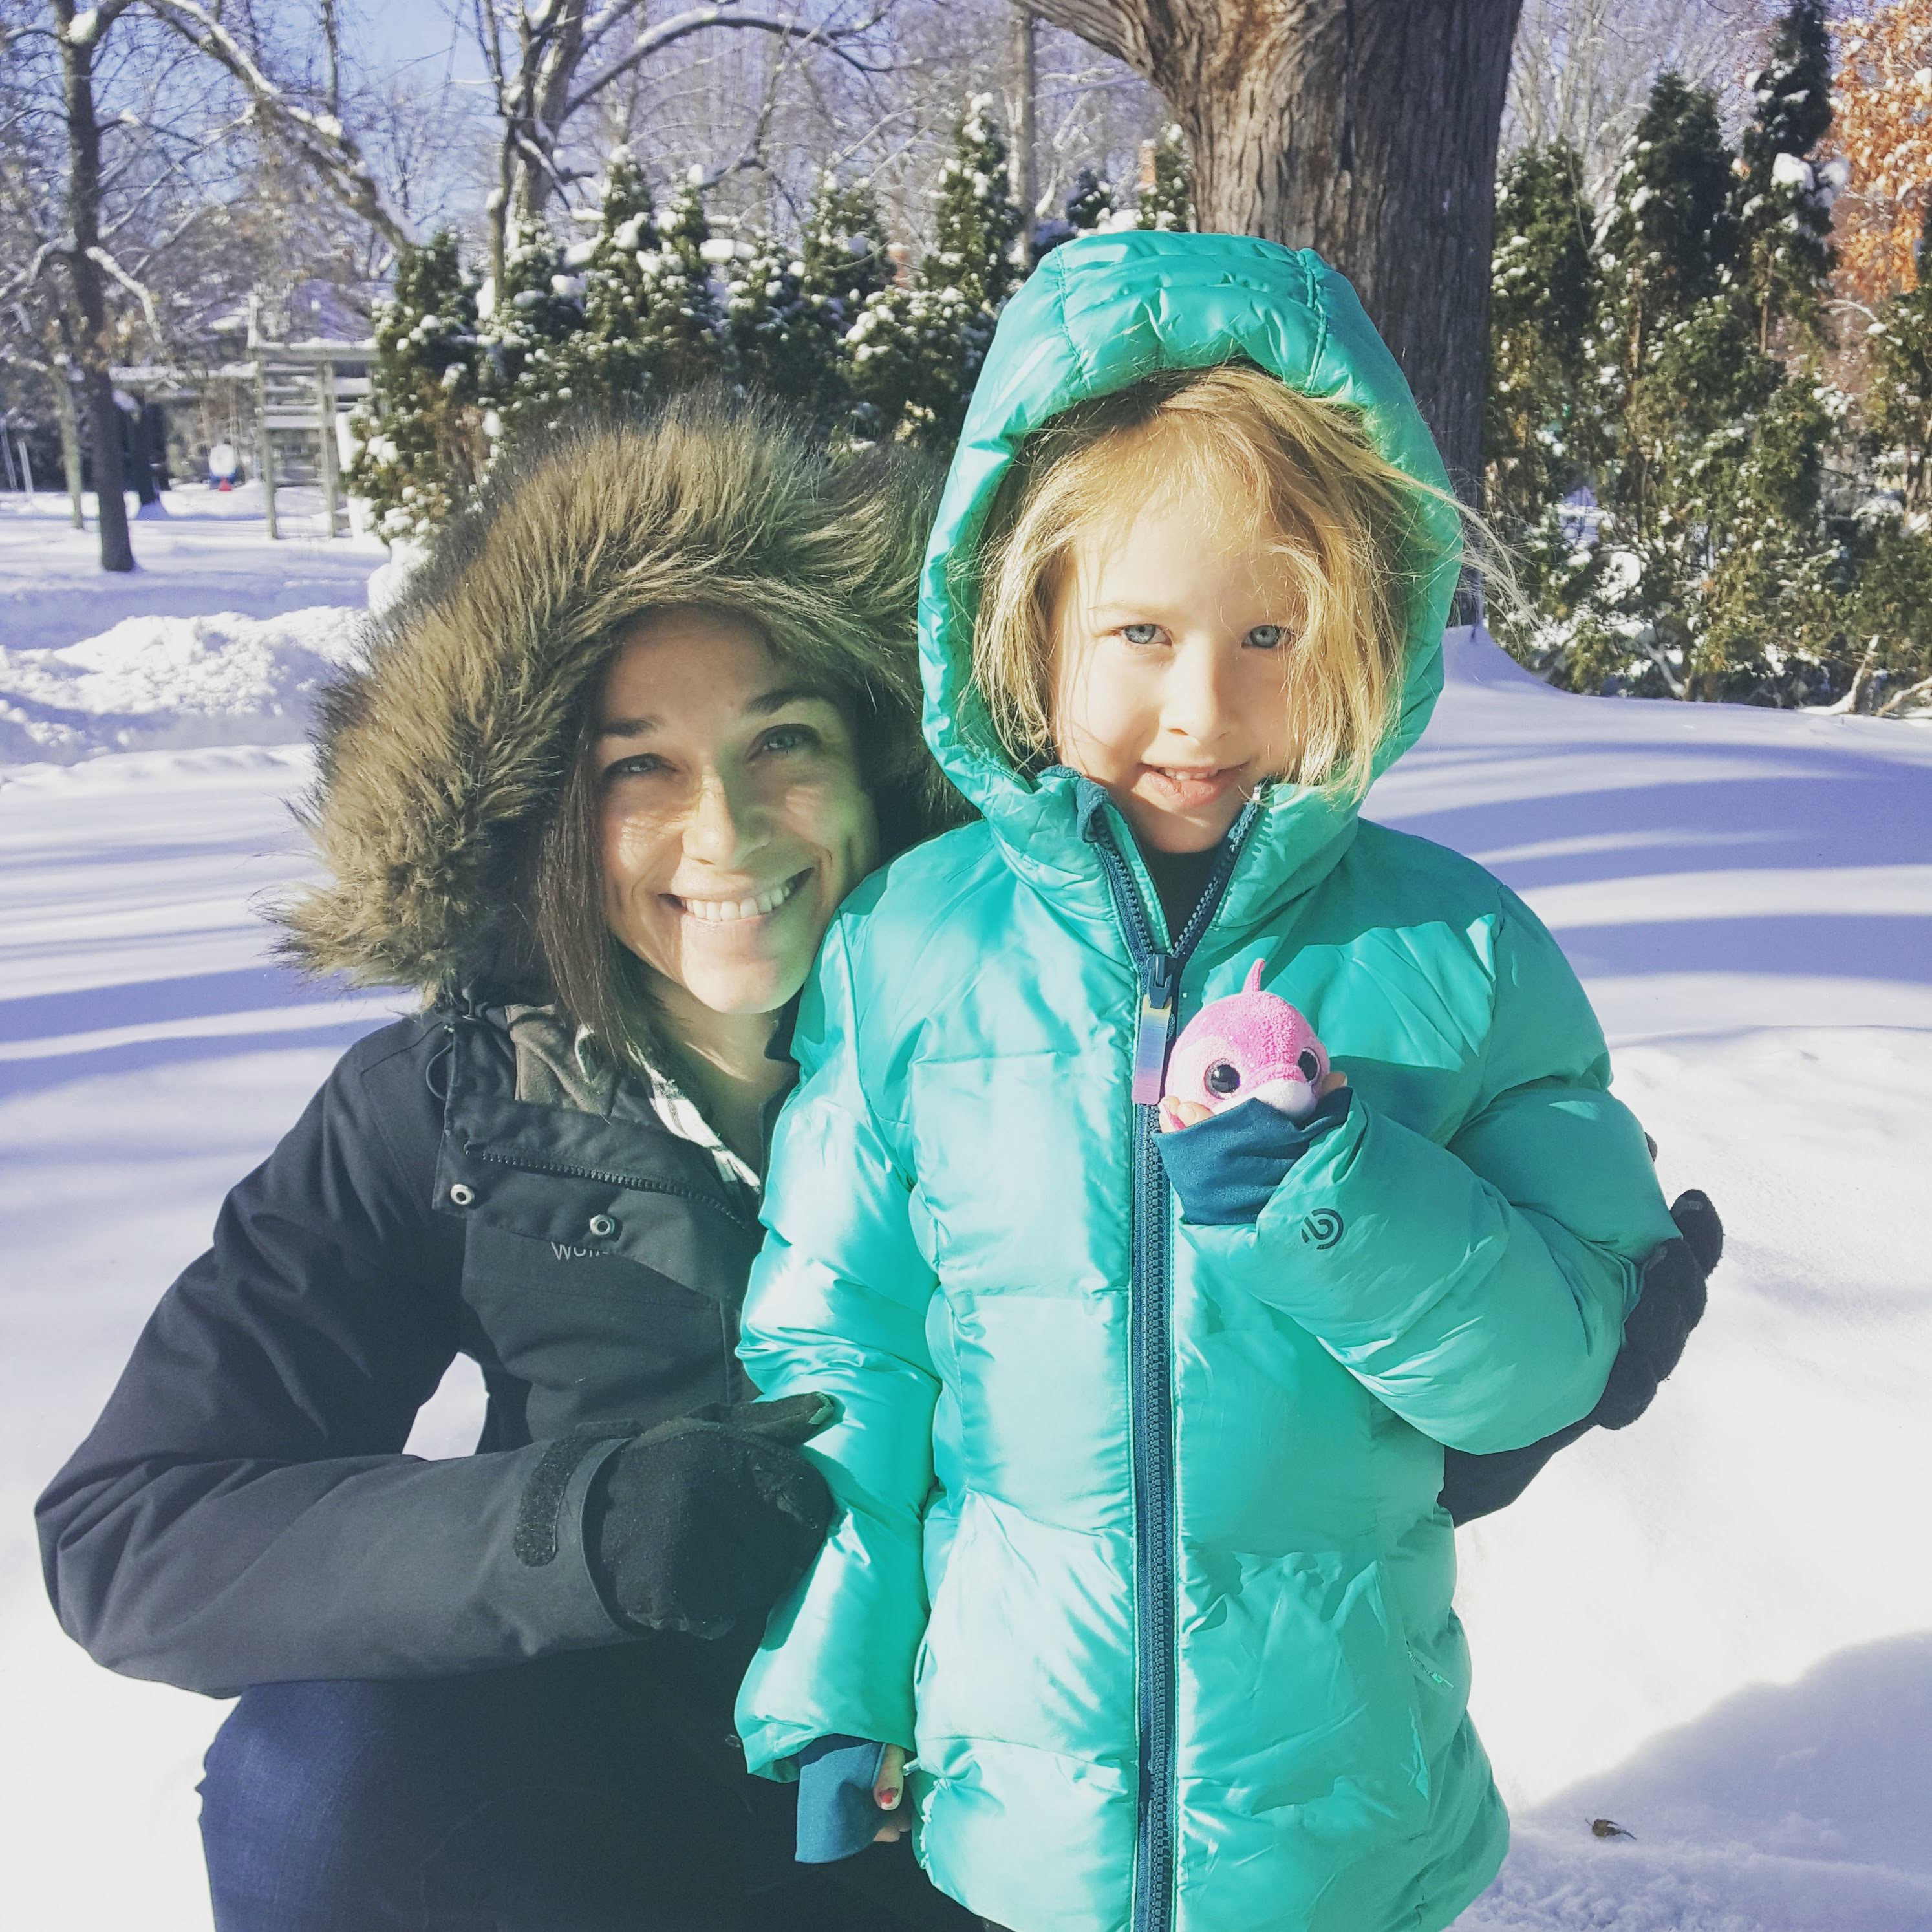 Alice and Elizabeth in the snow!